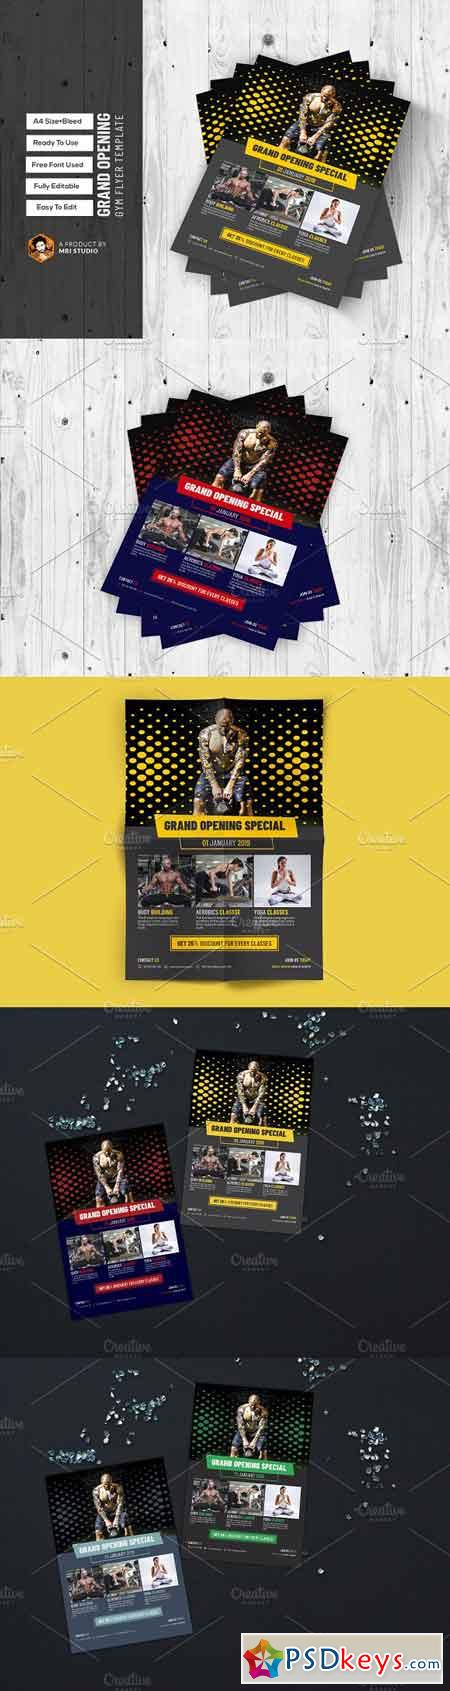 Grand Opening GYM Flyer Template 2634039